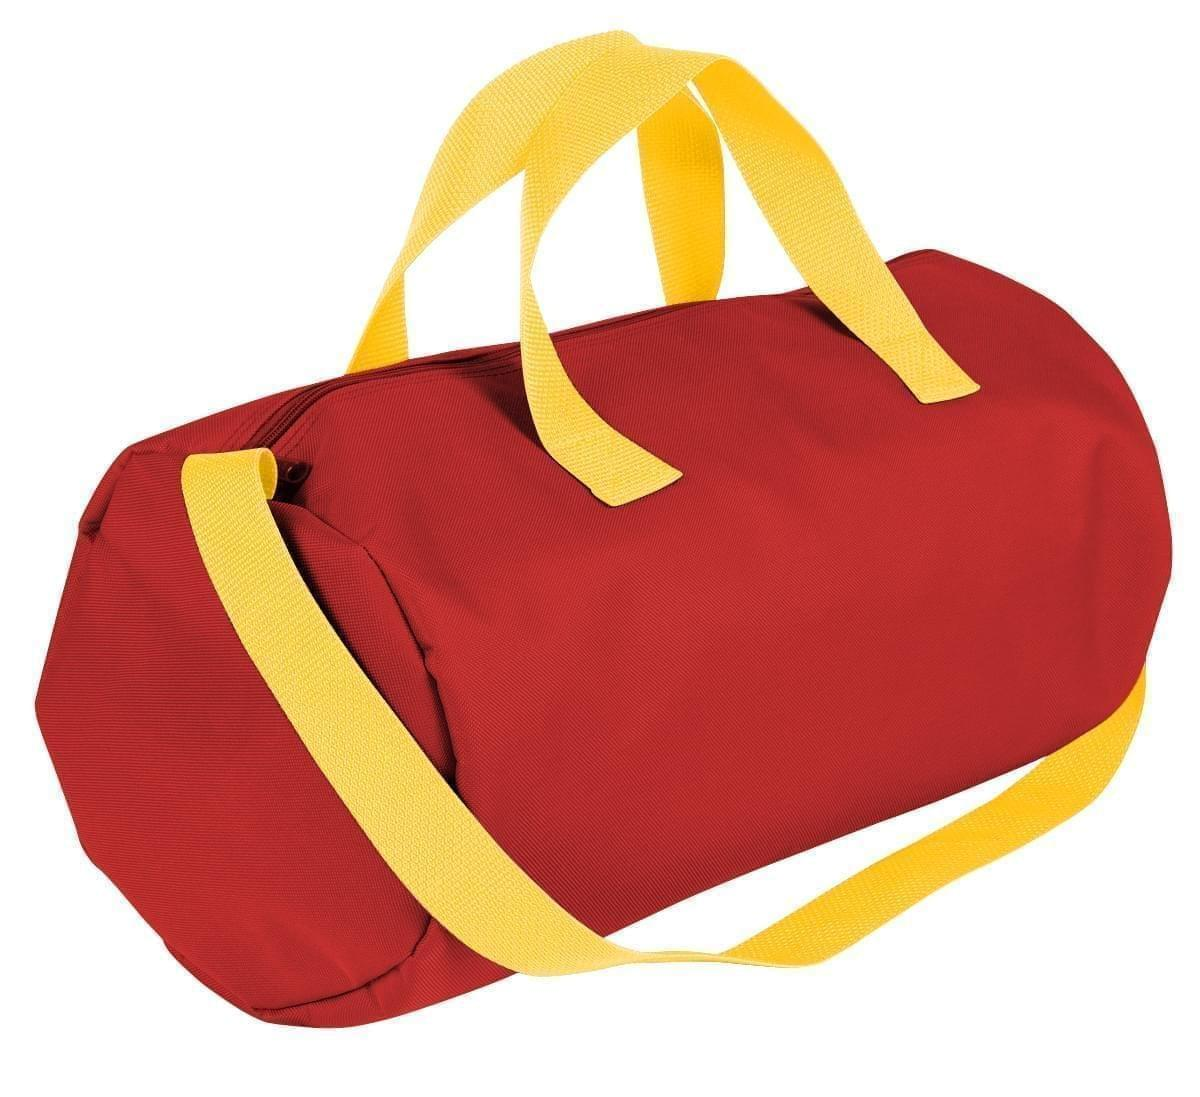 USA Made Nylon Poly Gym Roll Bags, Red-Gold, ROCX31AAZ5